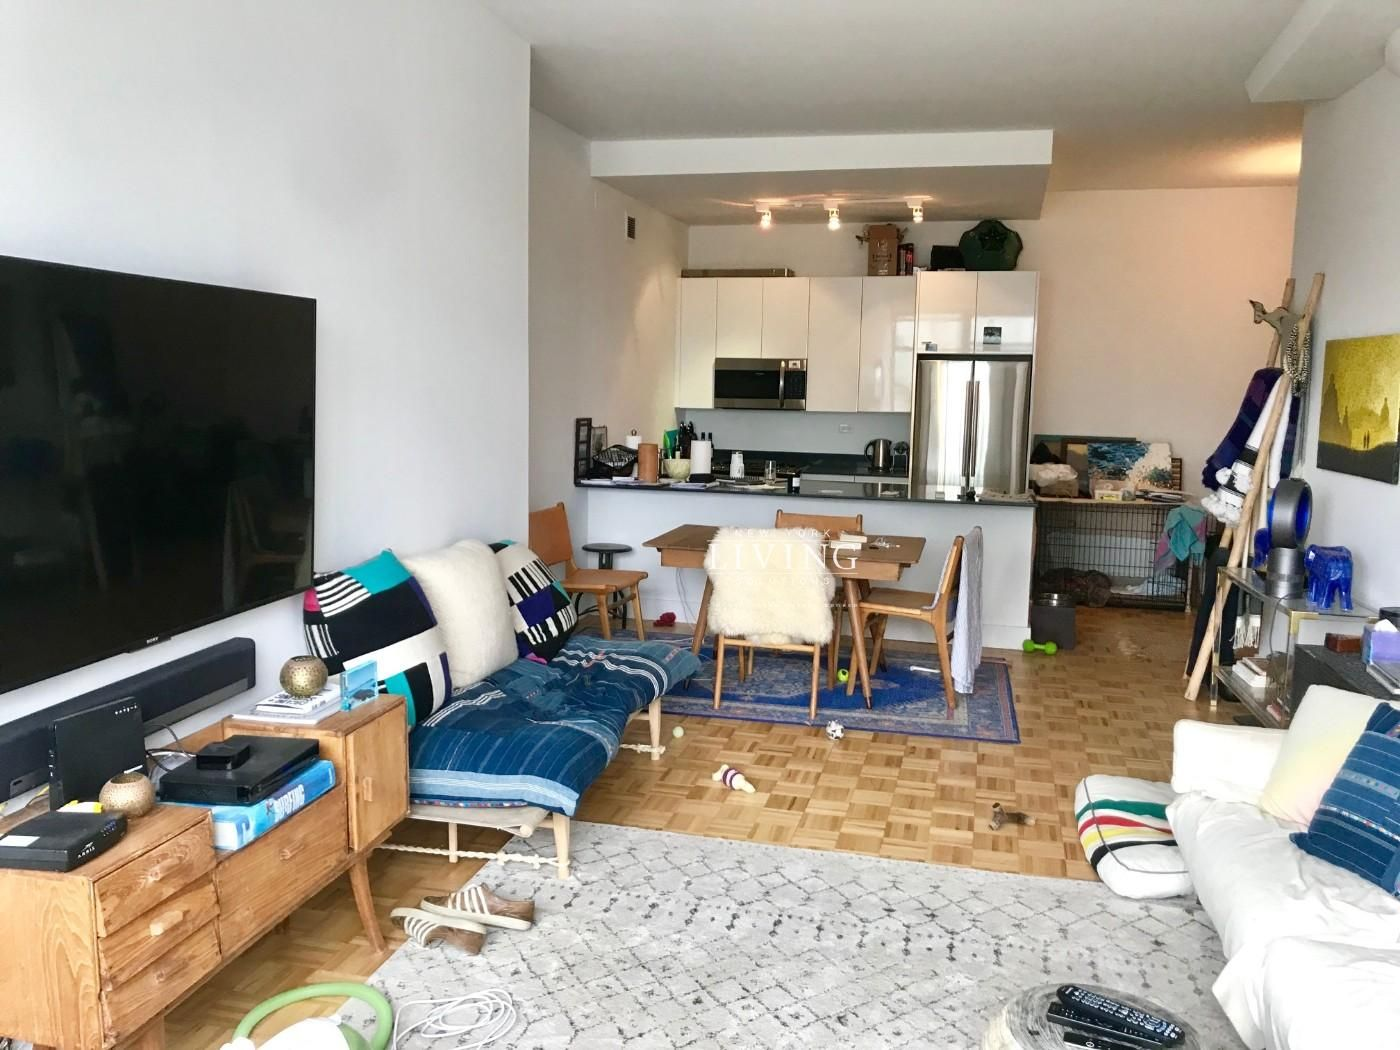 1 Bedroom 1 Bathroom Apartment For Sale In West Village West Village Nyc Apartment Loft Style Apartments Apartments For Rent